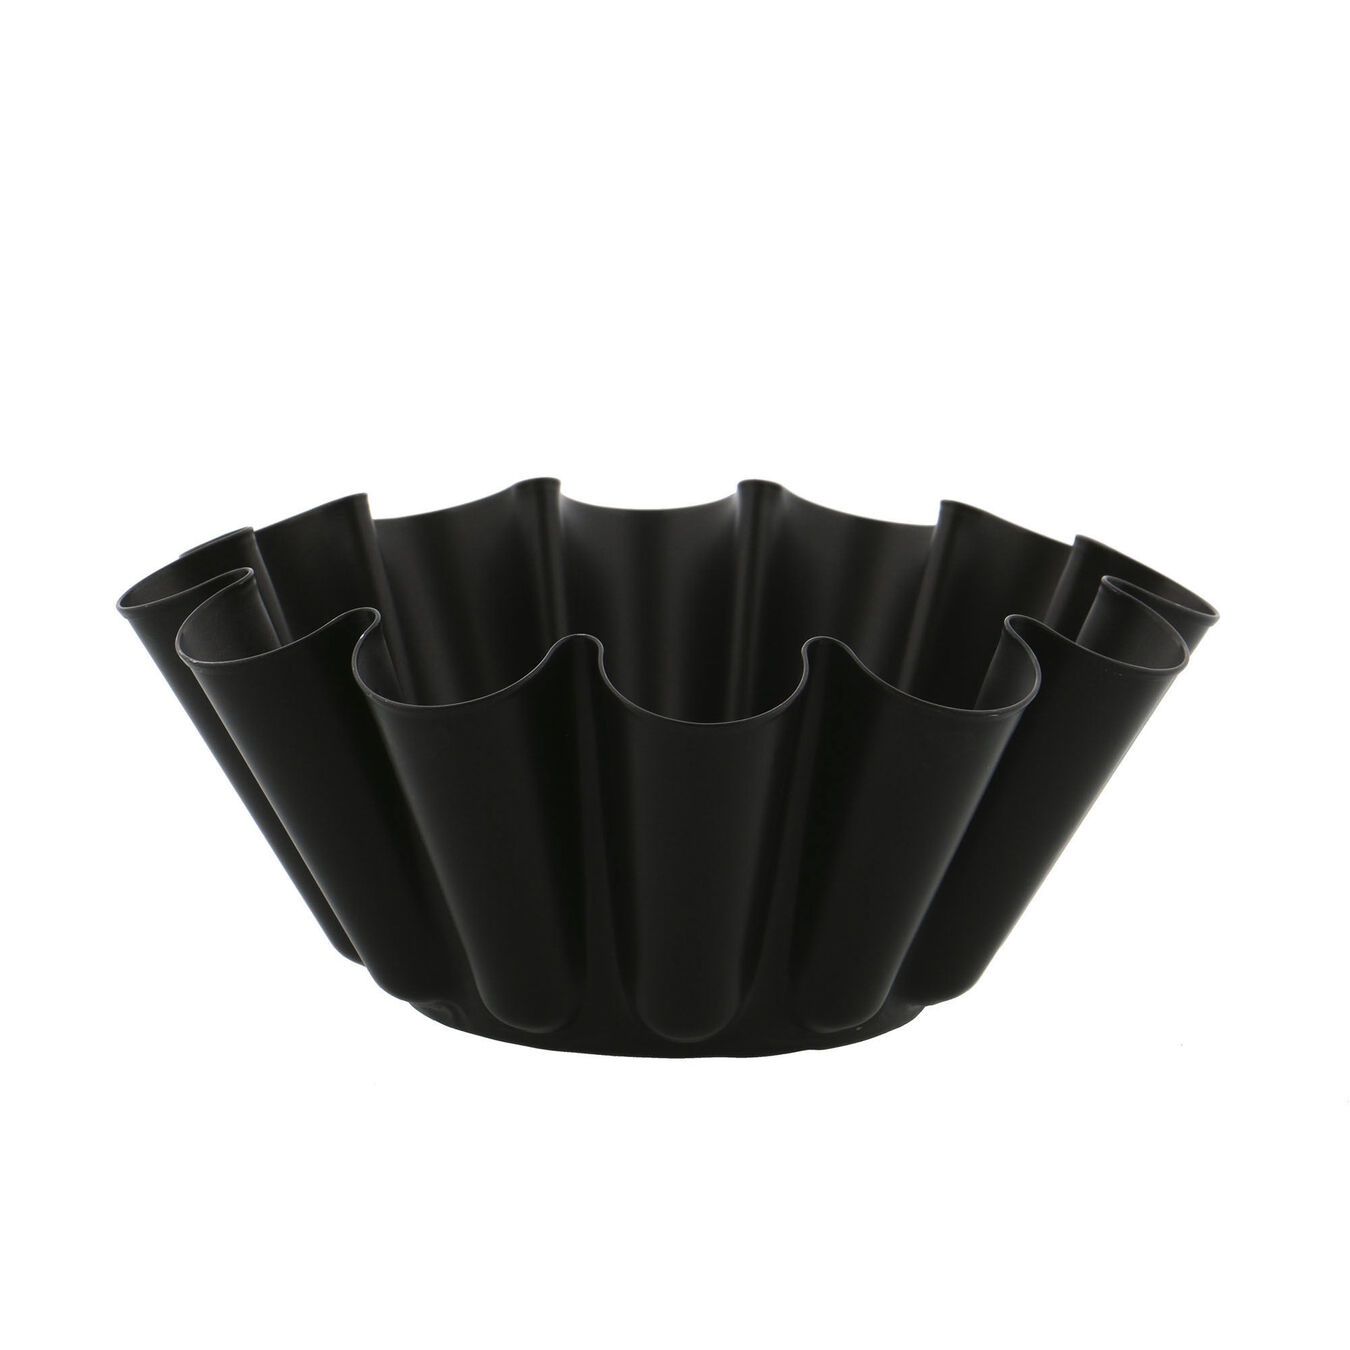 8.5-inchSpecial shape bakeware,,large 1